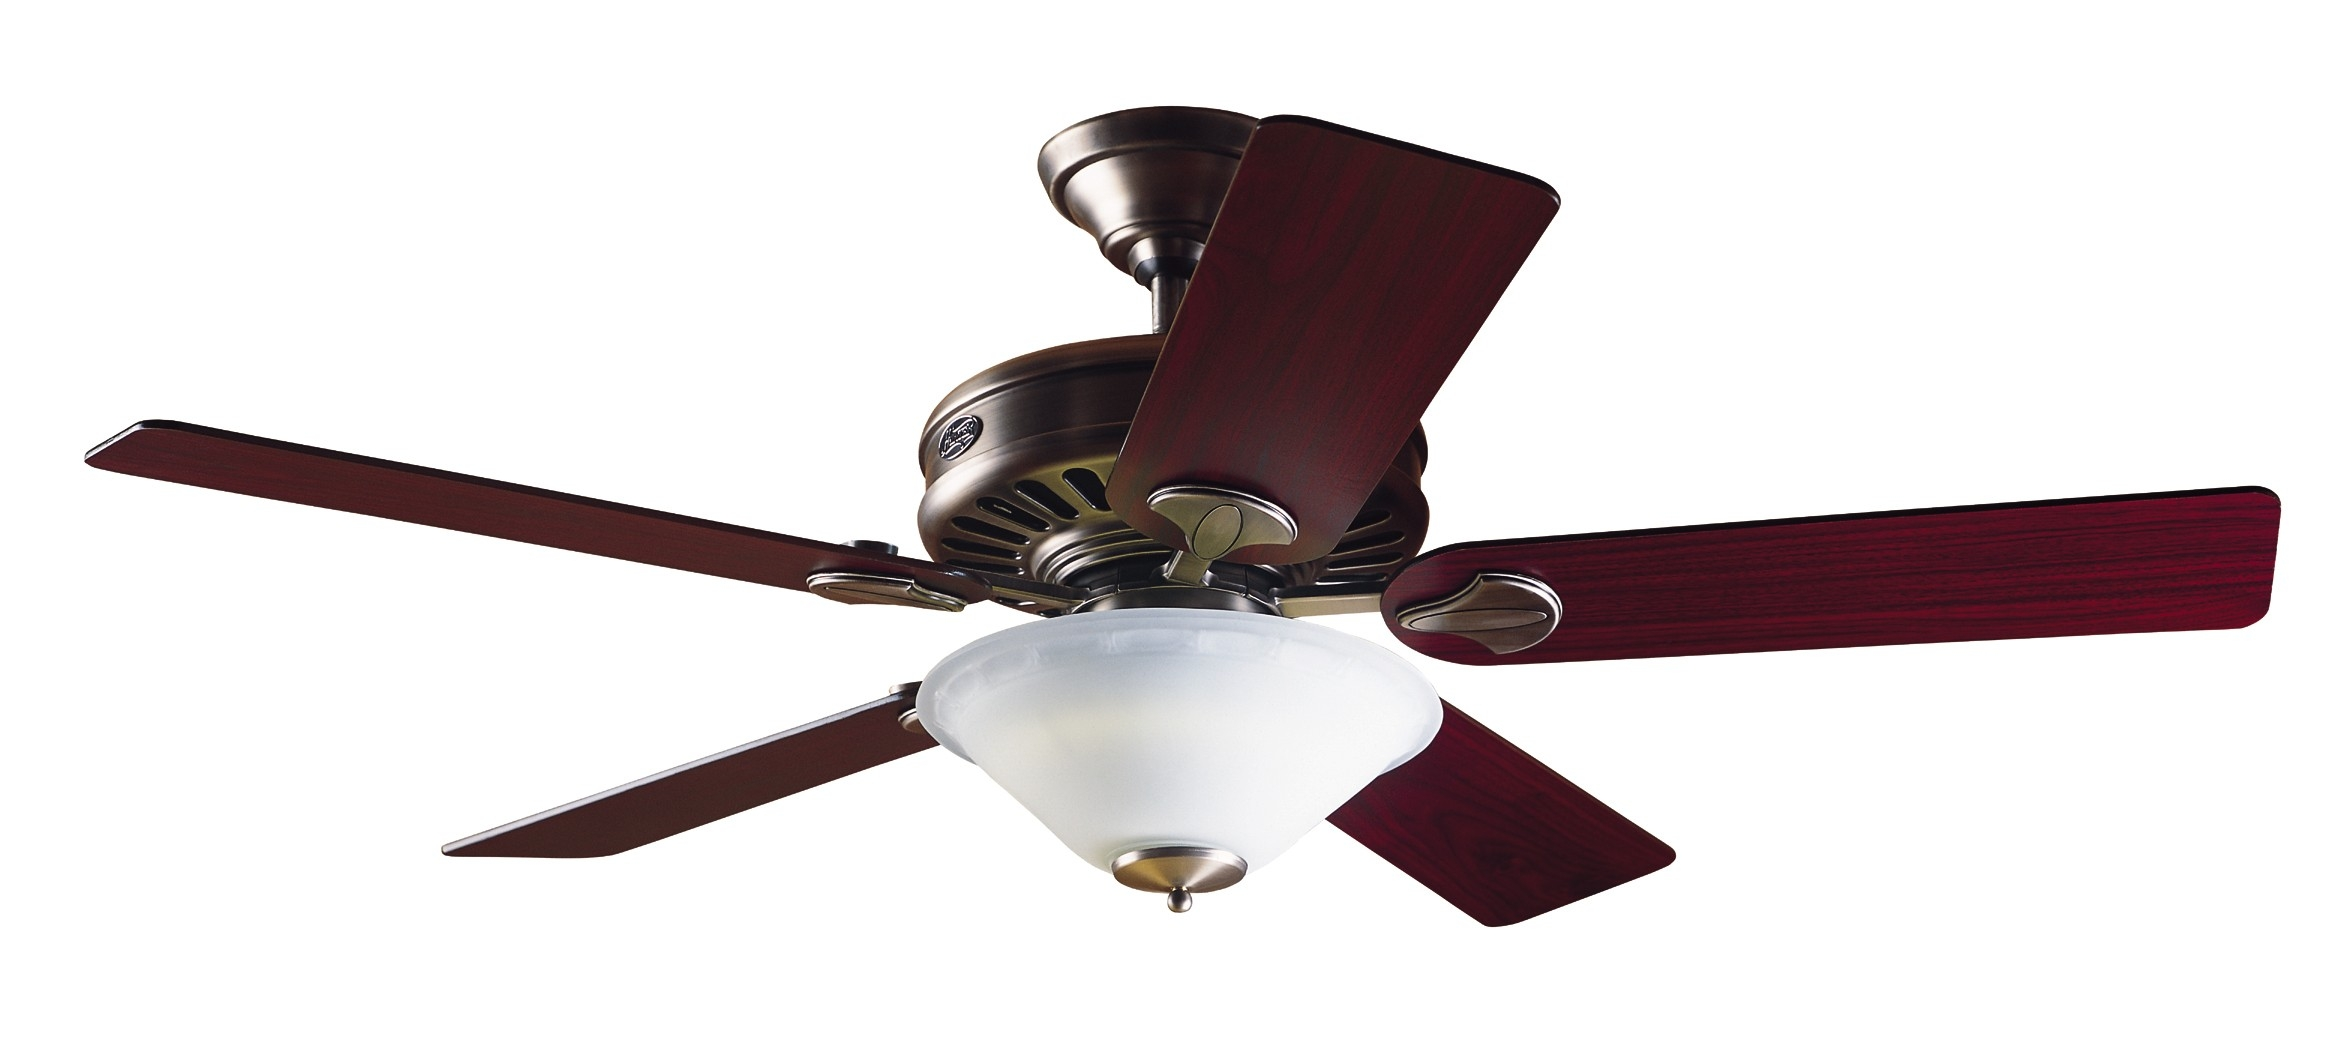 Ceiling Fan image